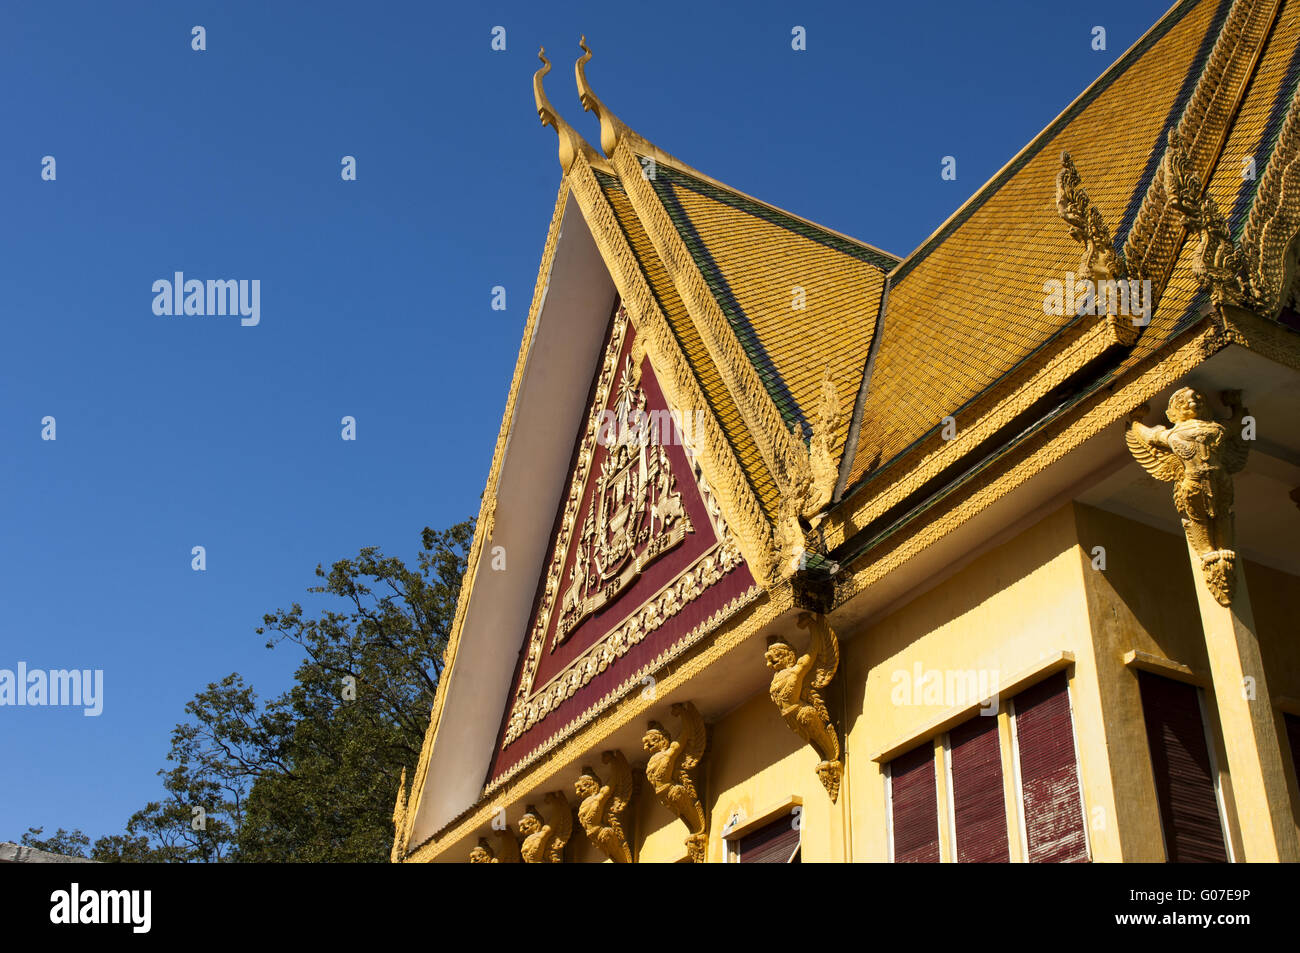 roof construction at the Throne Hall, Royal Palace Stock Photo